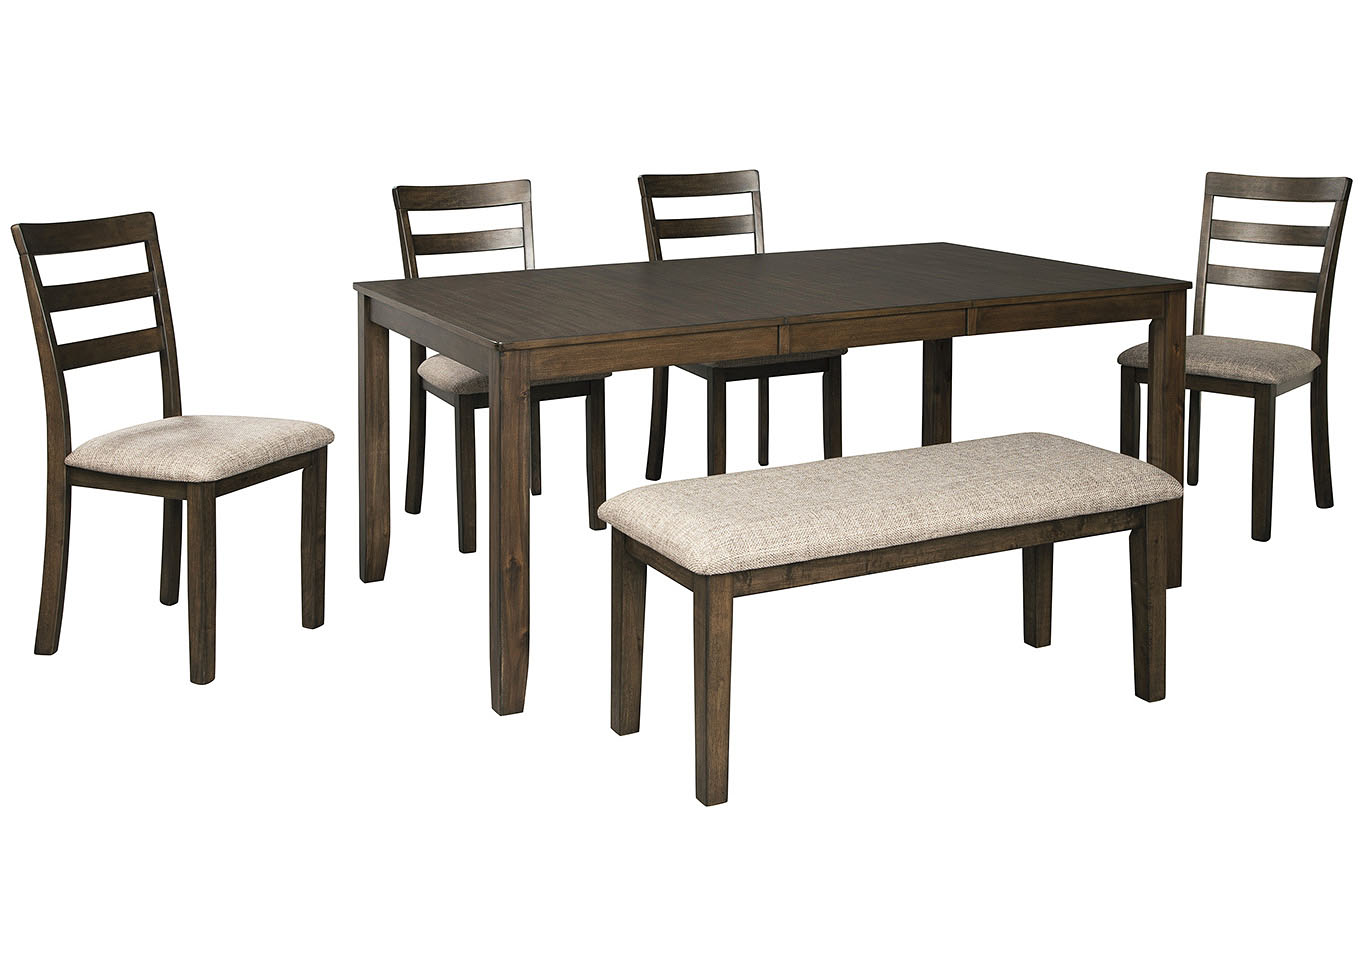 Drewing Dining Room Table W 4 Side Chairs Bench Us Furniture